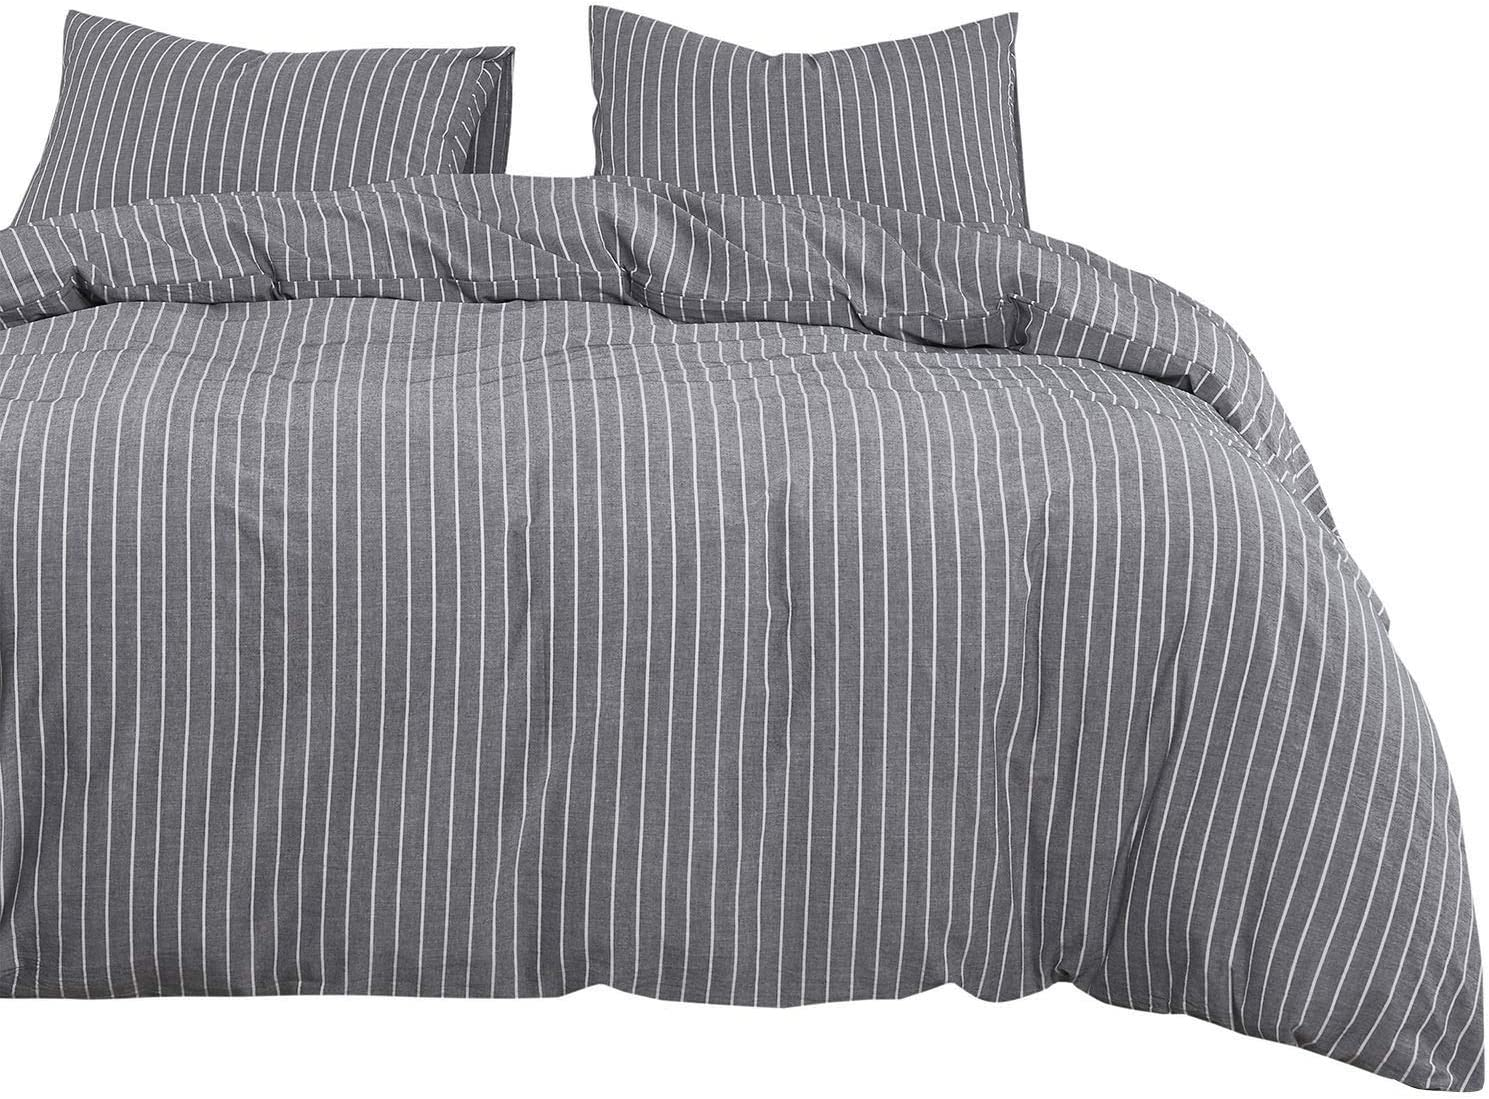 Wake In Cloud - Gray Striped Duvet Cover Set, 100% Washed Cotton Bedding, Grey with White Vertical Ticking Stripes Pattern Printed, with Zipper Closure (3pcs, Twin Size)